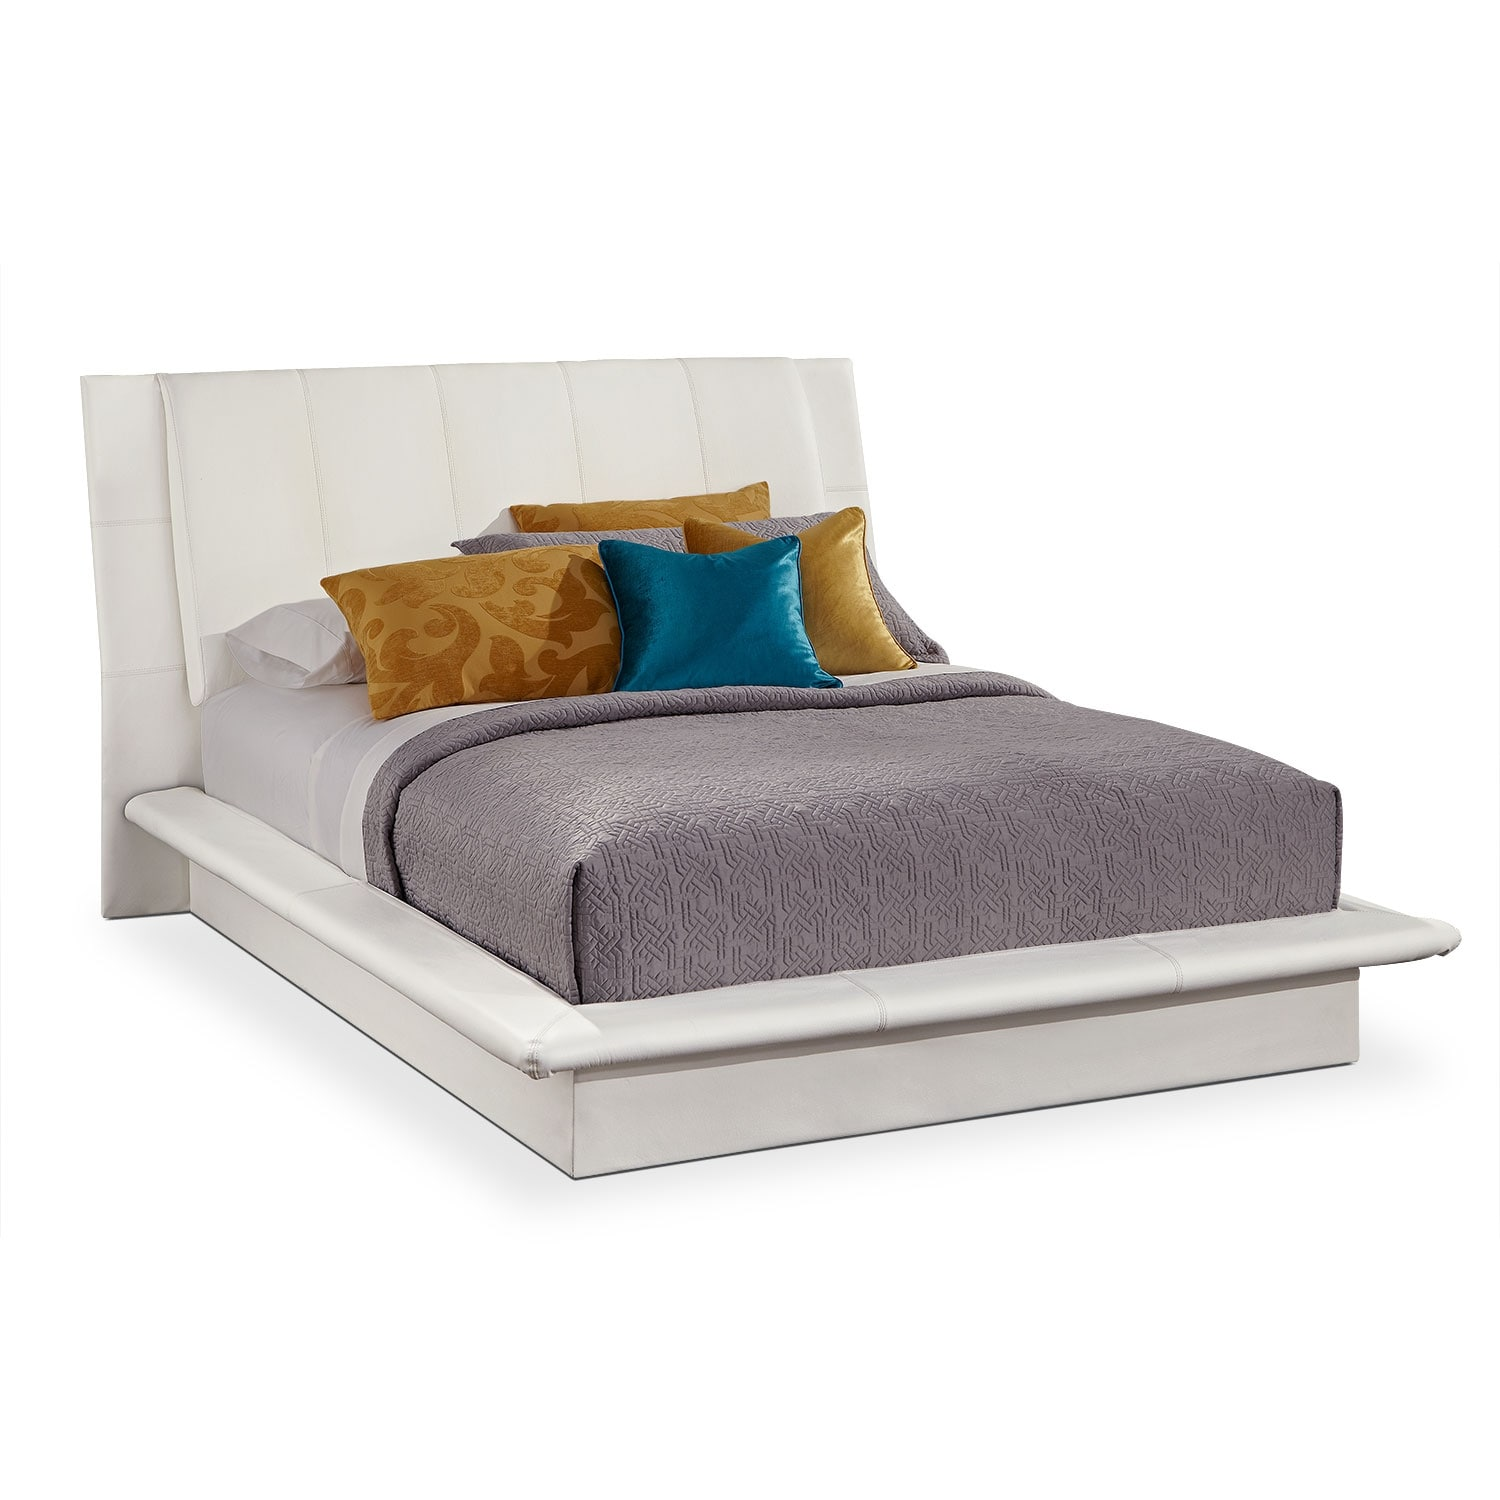 Bedroom Furniture - Dimora White King Bed